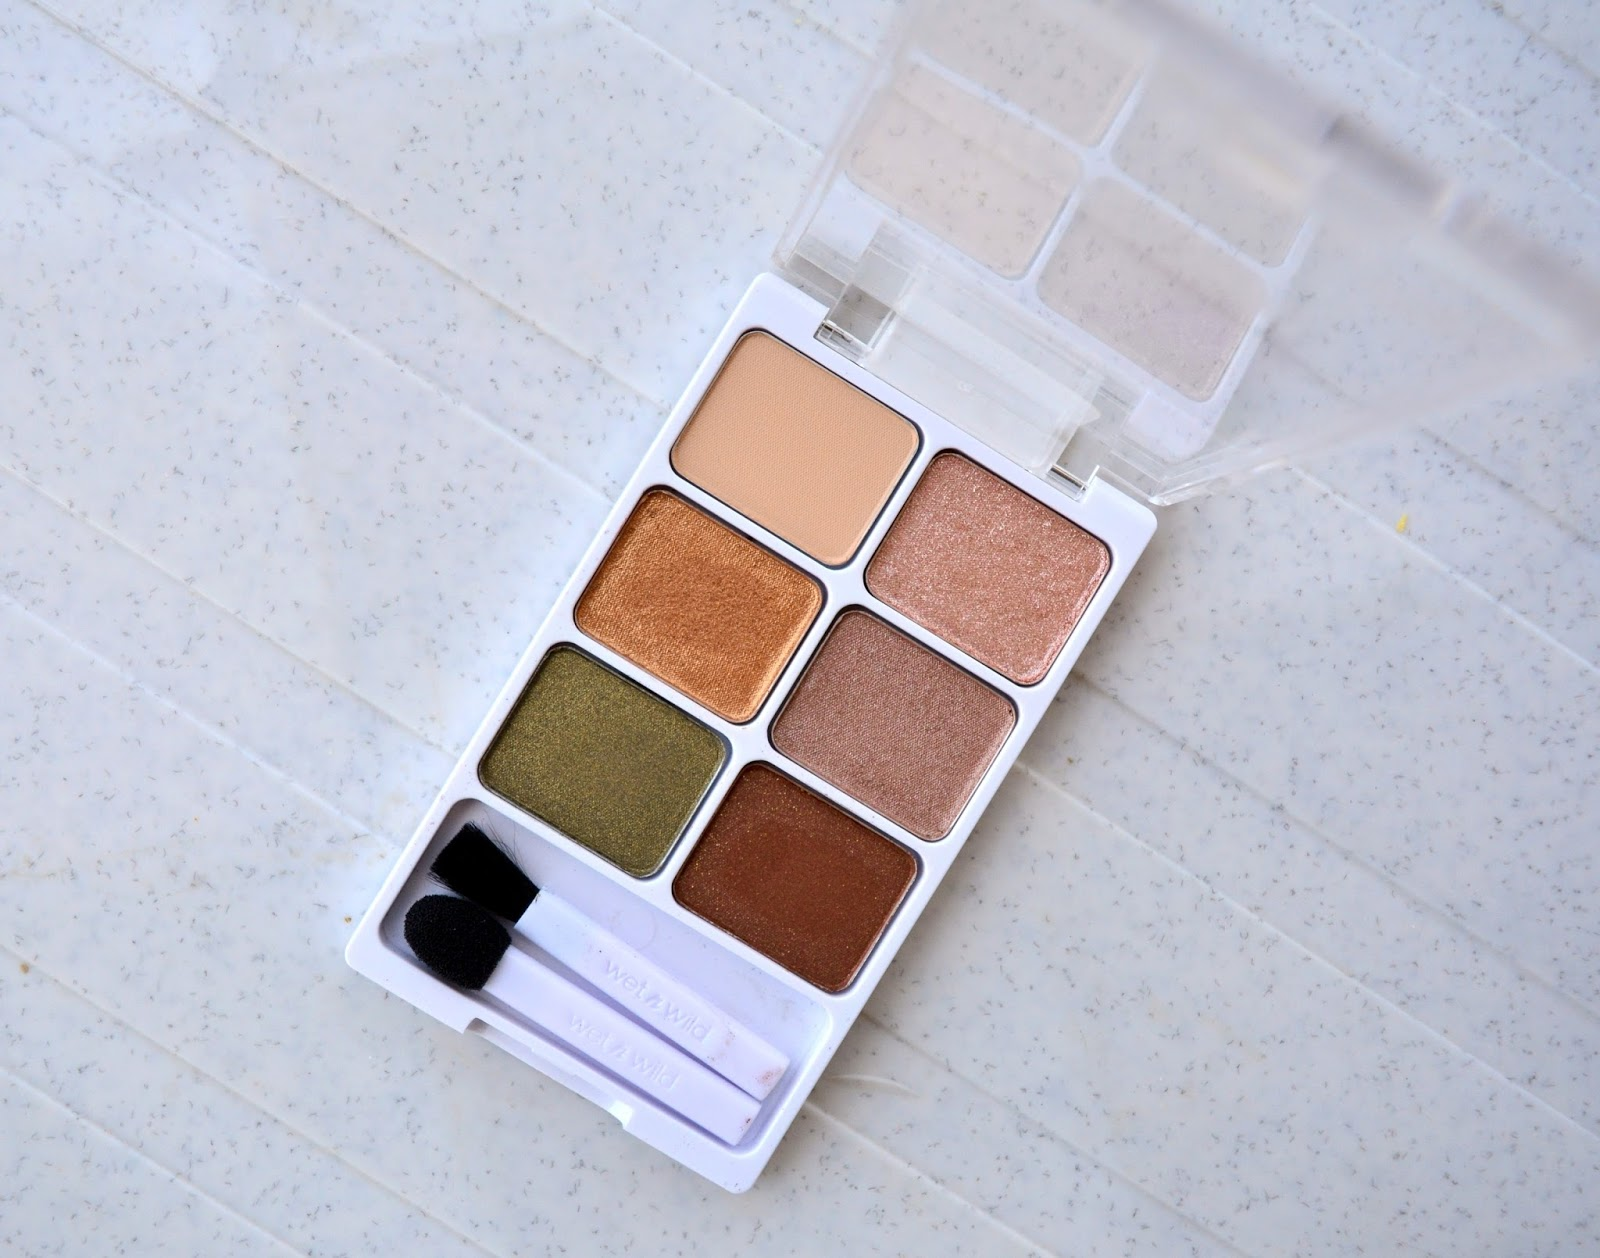 Wet n Wild Color Icon Eyeshadow Palette 'Vinyl Collection' Review, Swatch, Fotd